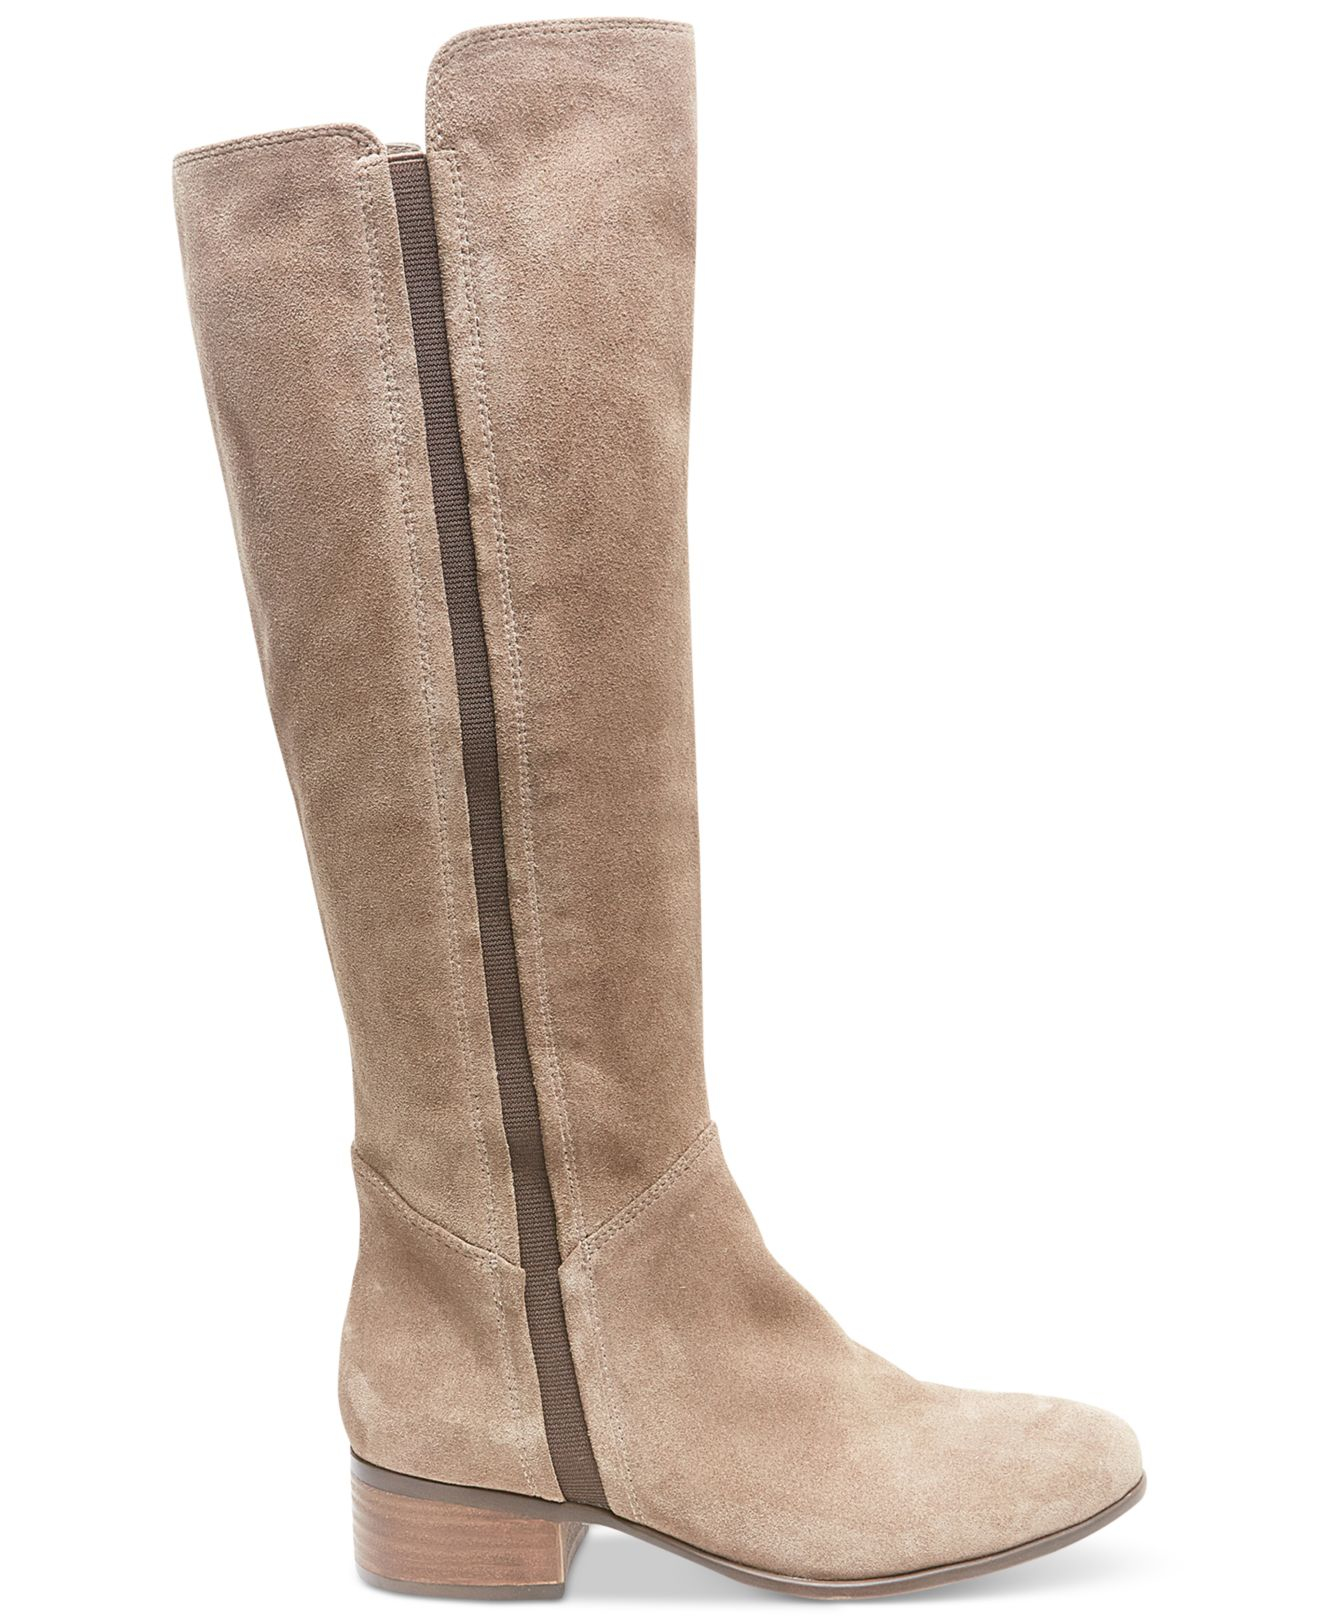 Steve madden suede dark brown boots car interior design for Steve madden home designs